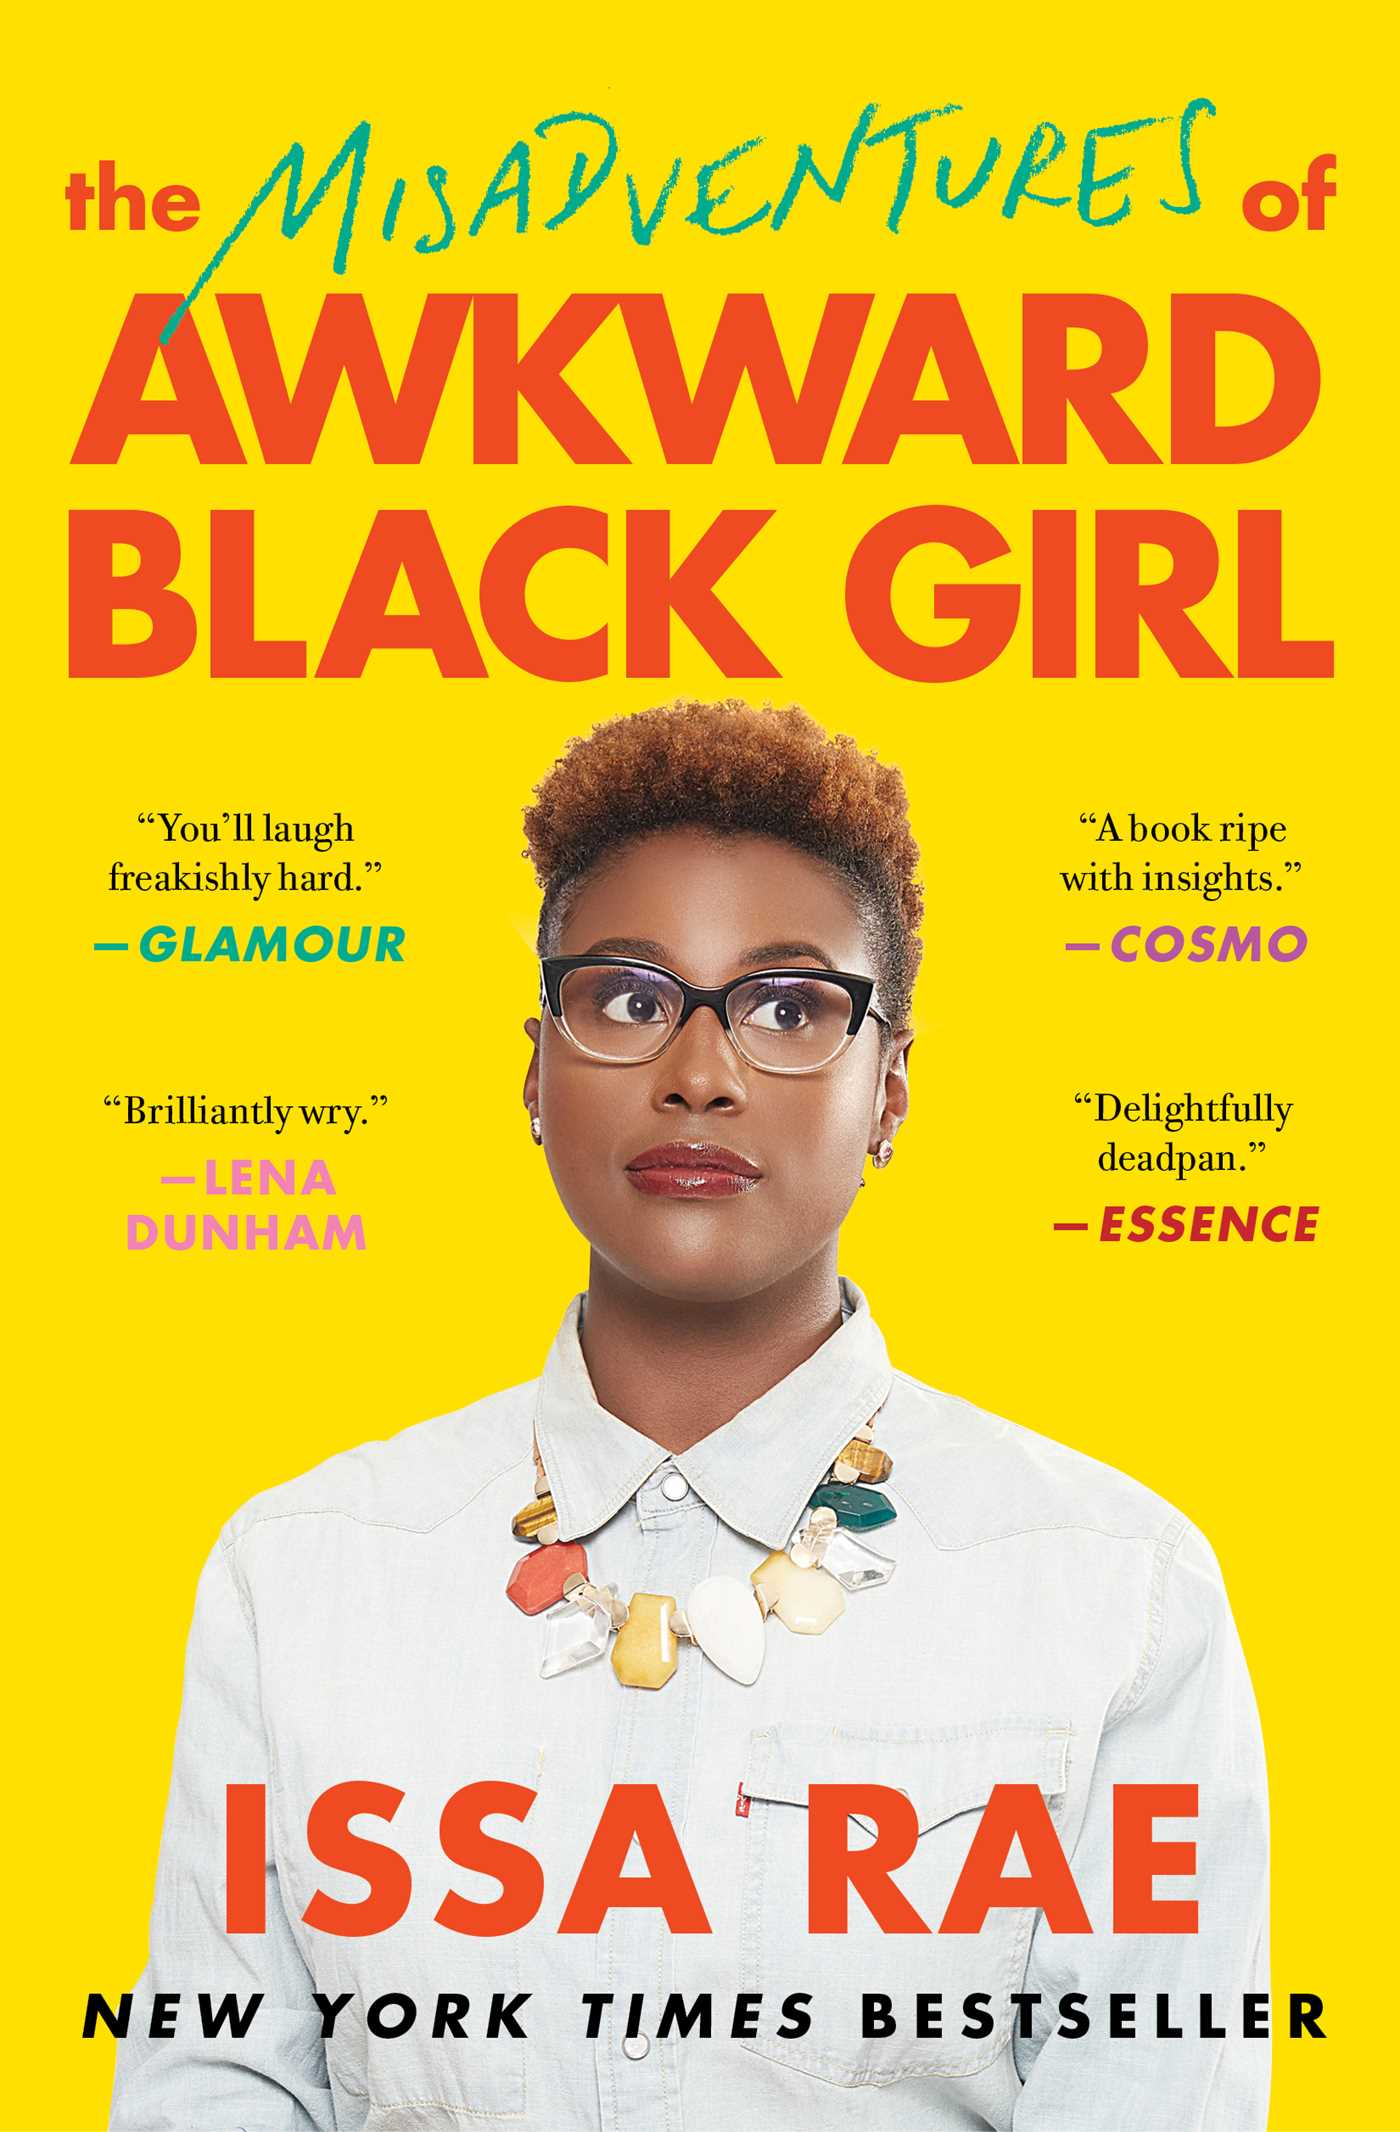 The misadventures of awkward black girl 9781476749075 hr